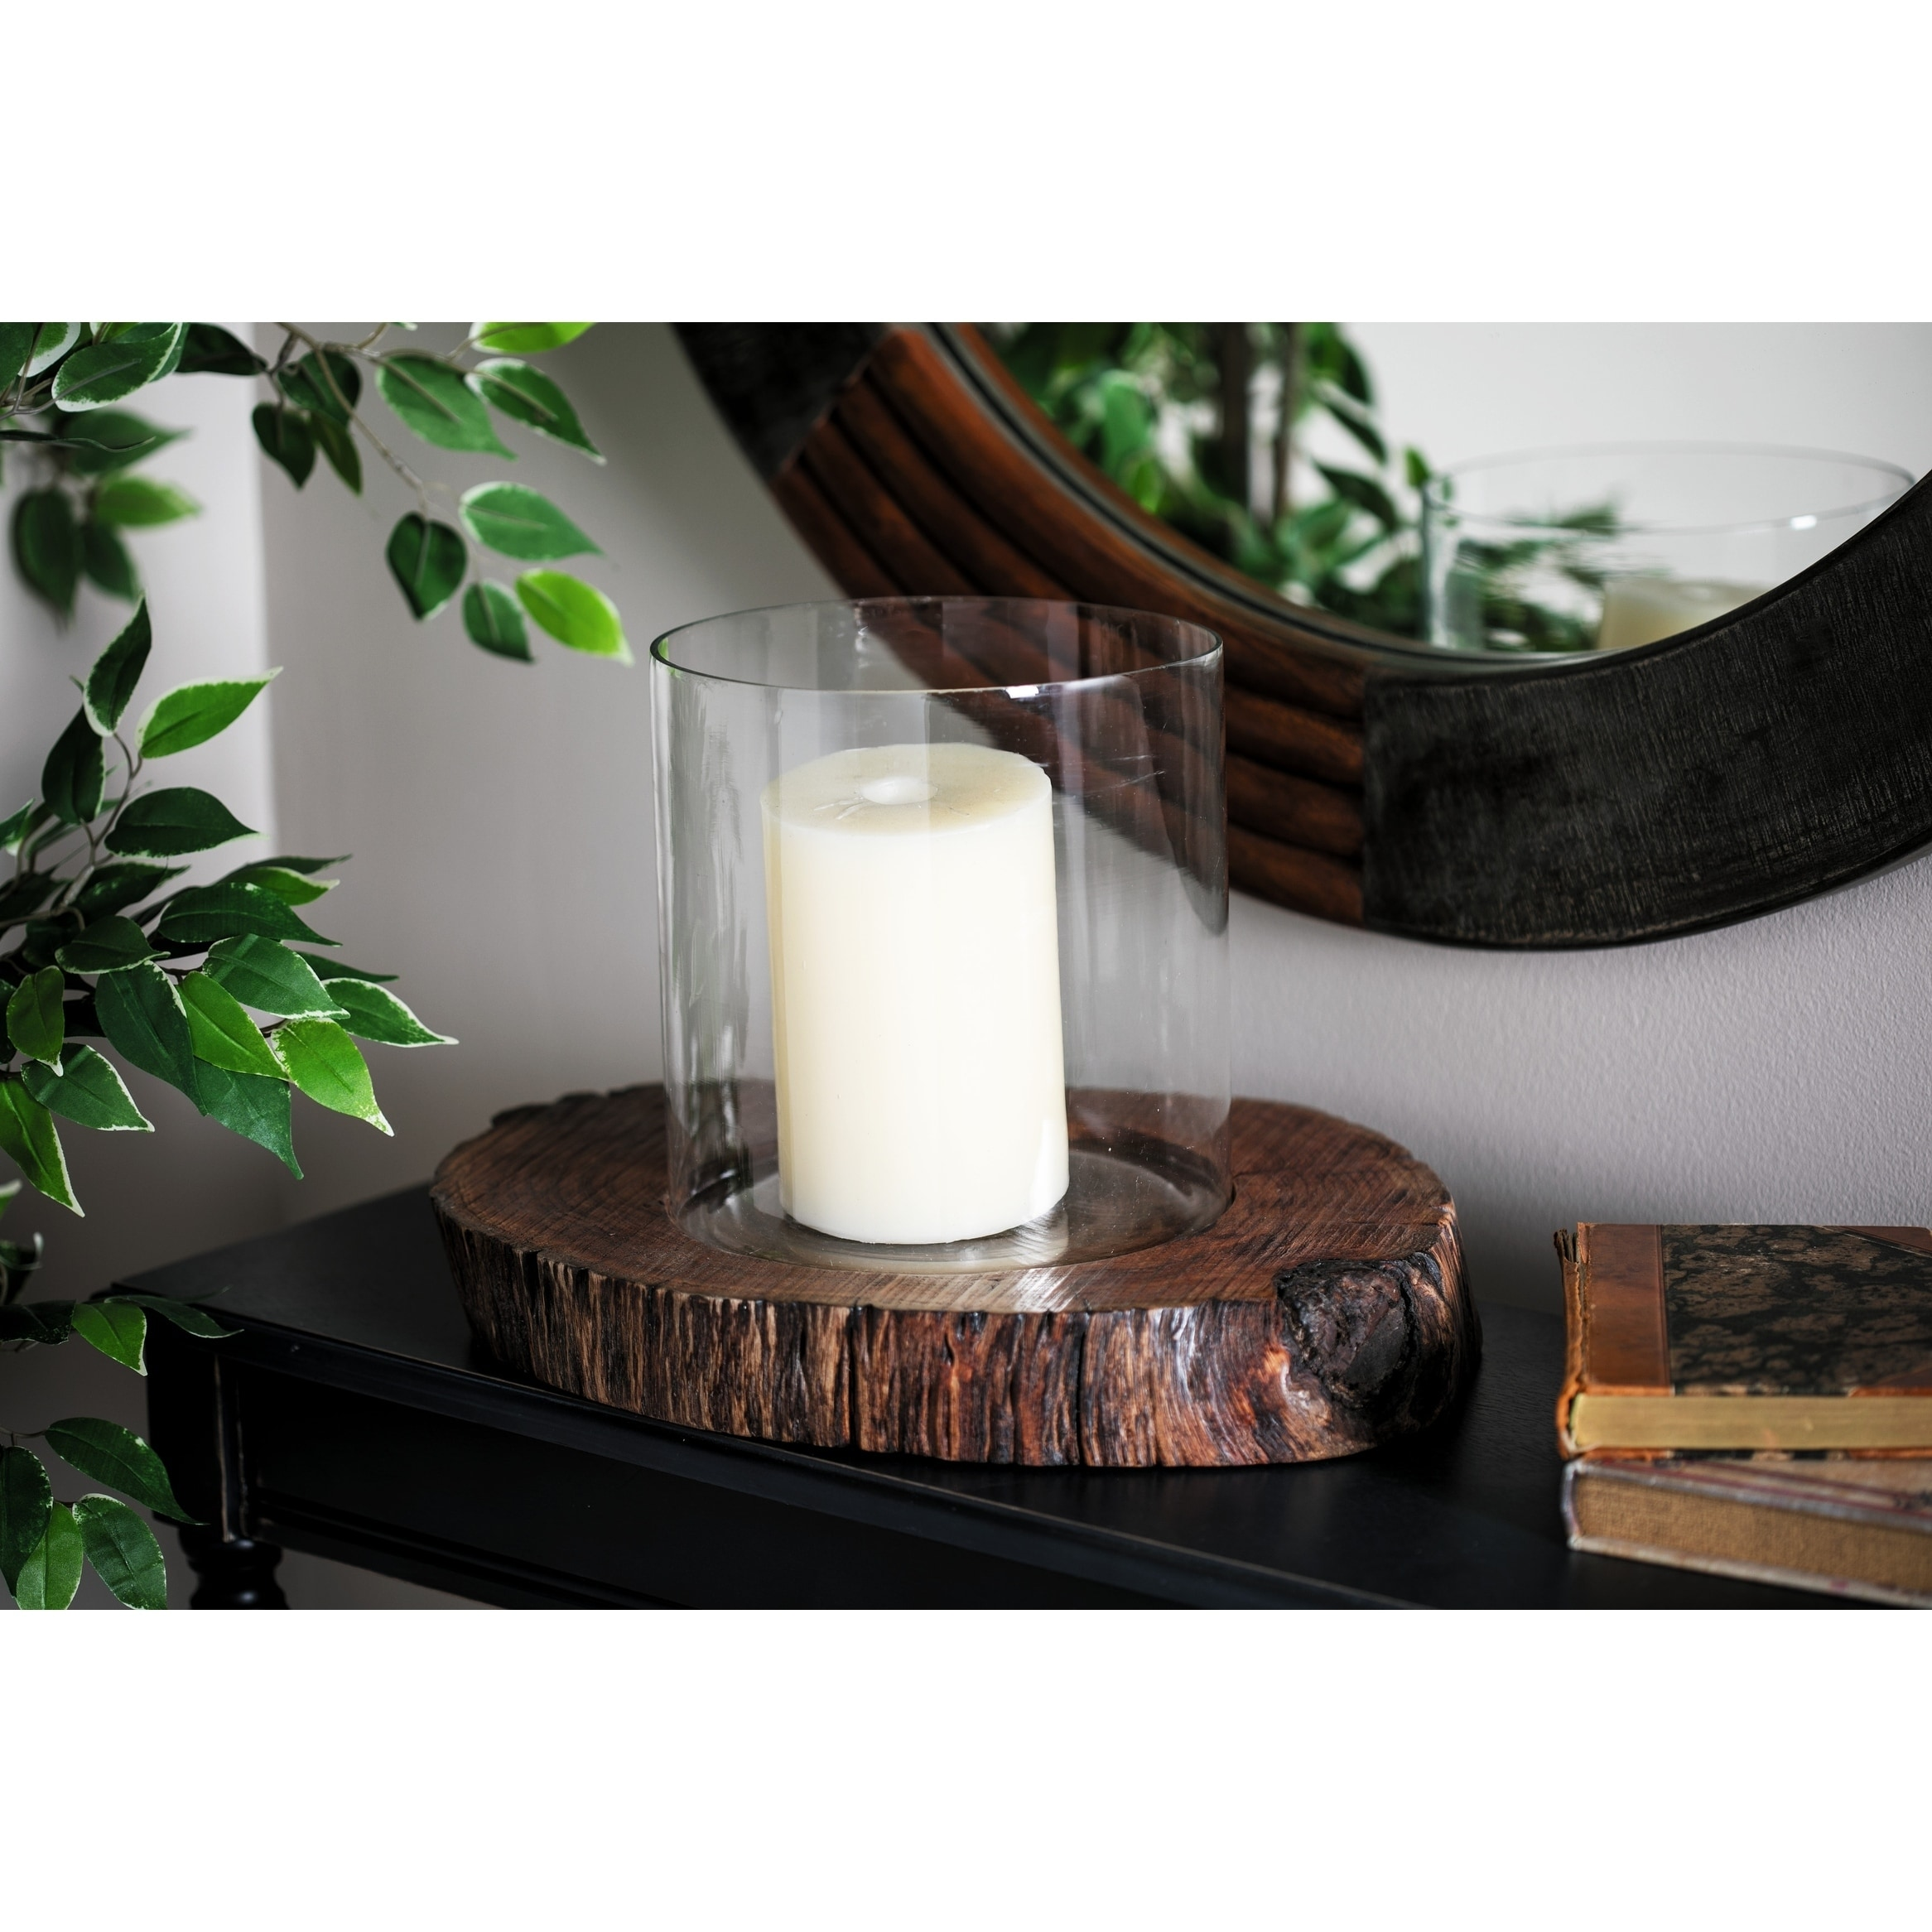 Rustic 10 X 11 Inch Glass Hurricane Candle Holder With Wooden Base Overstock 20460346